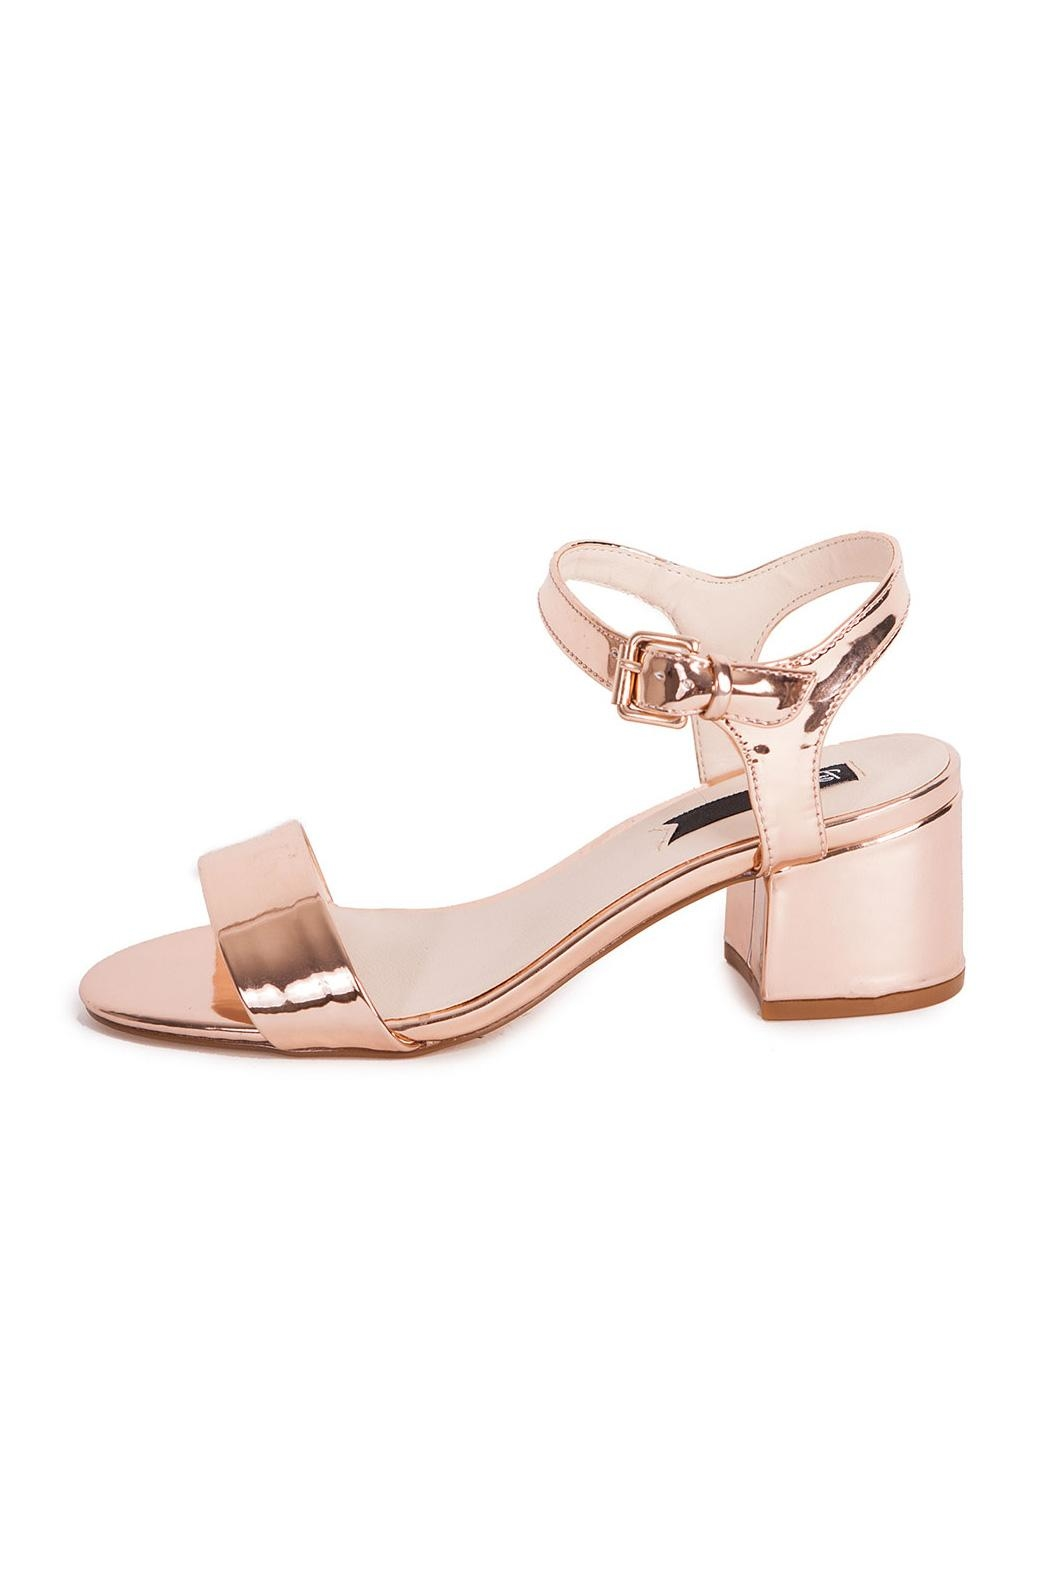 e48aeffe030e Blink Classic Rose Gold Sandals from Tel Aviv by Shoez Web Store ...